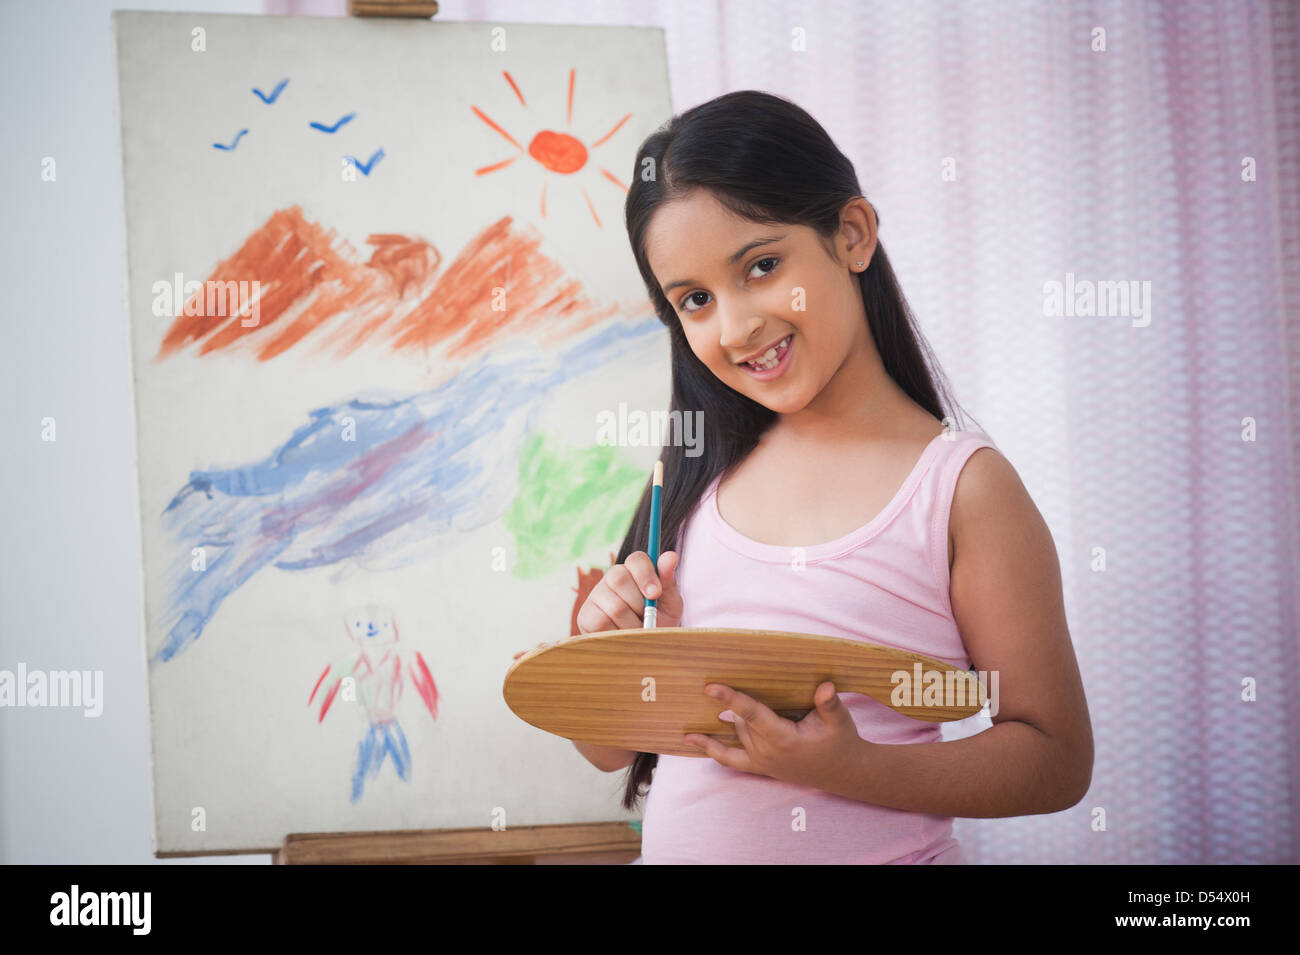 Portrait of a girl painting on artists canvas - Stock Image